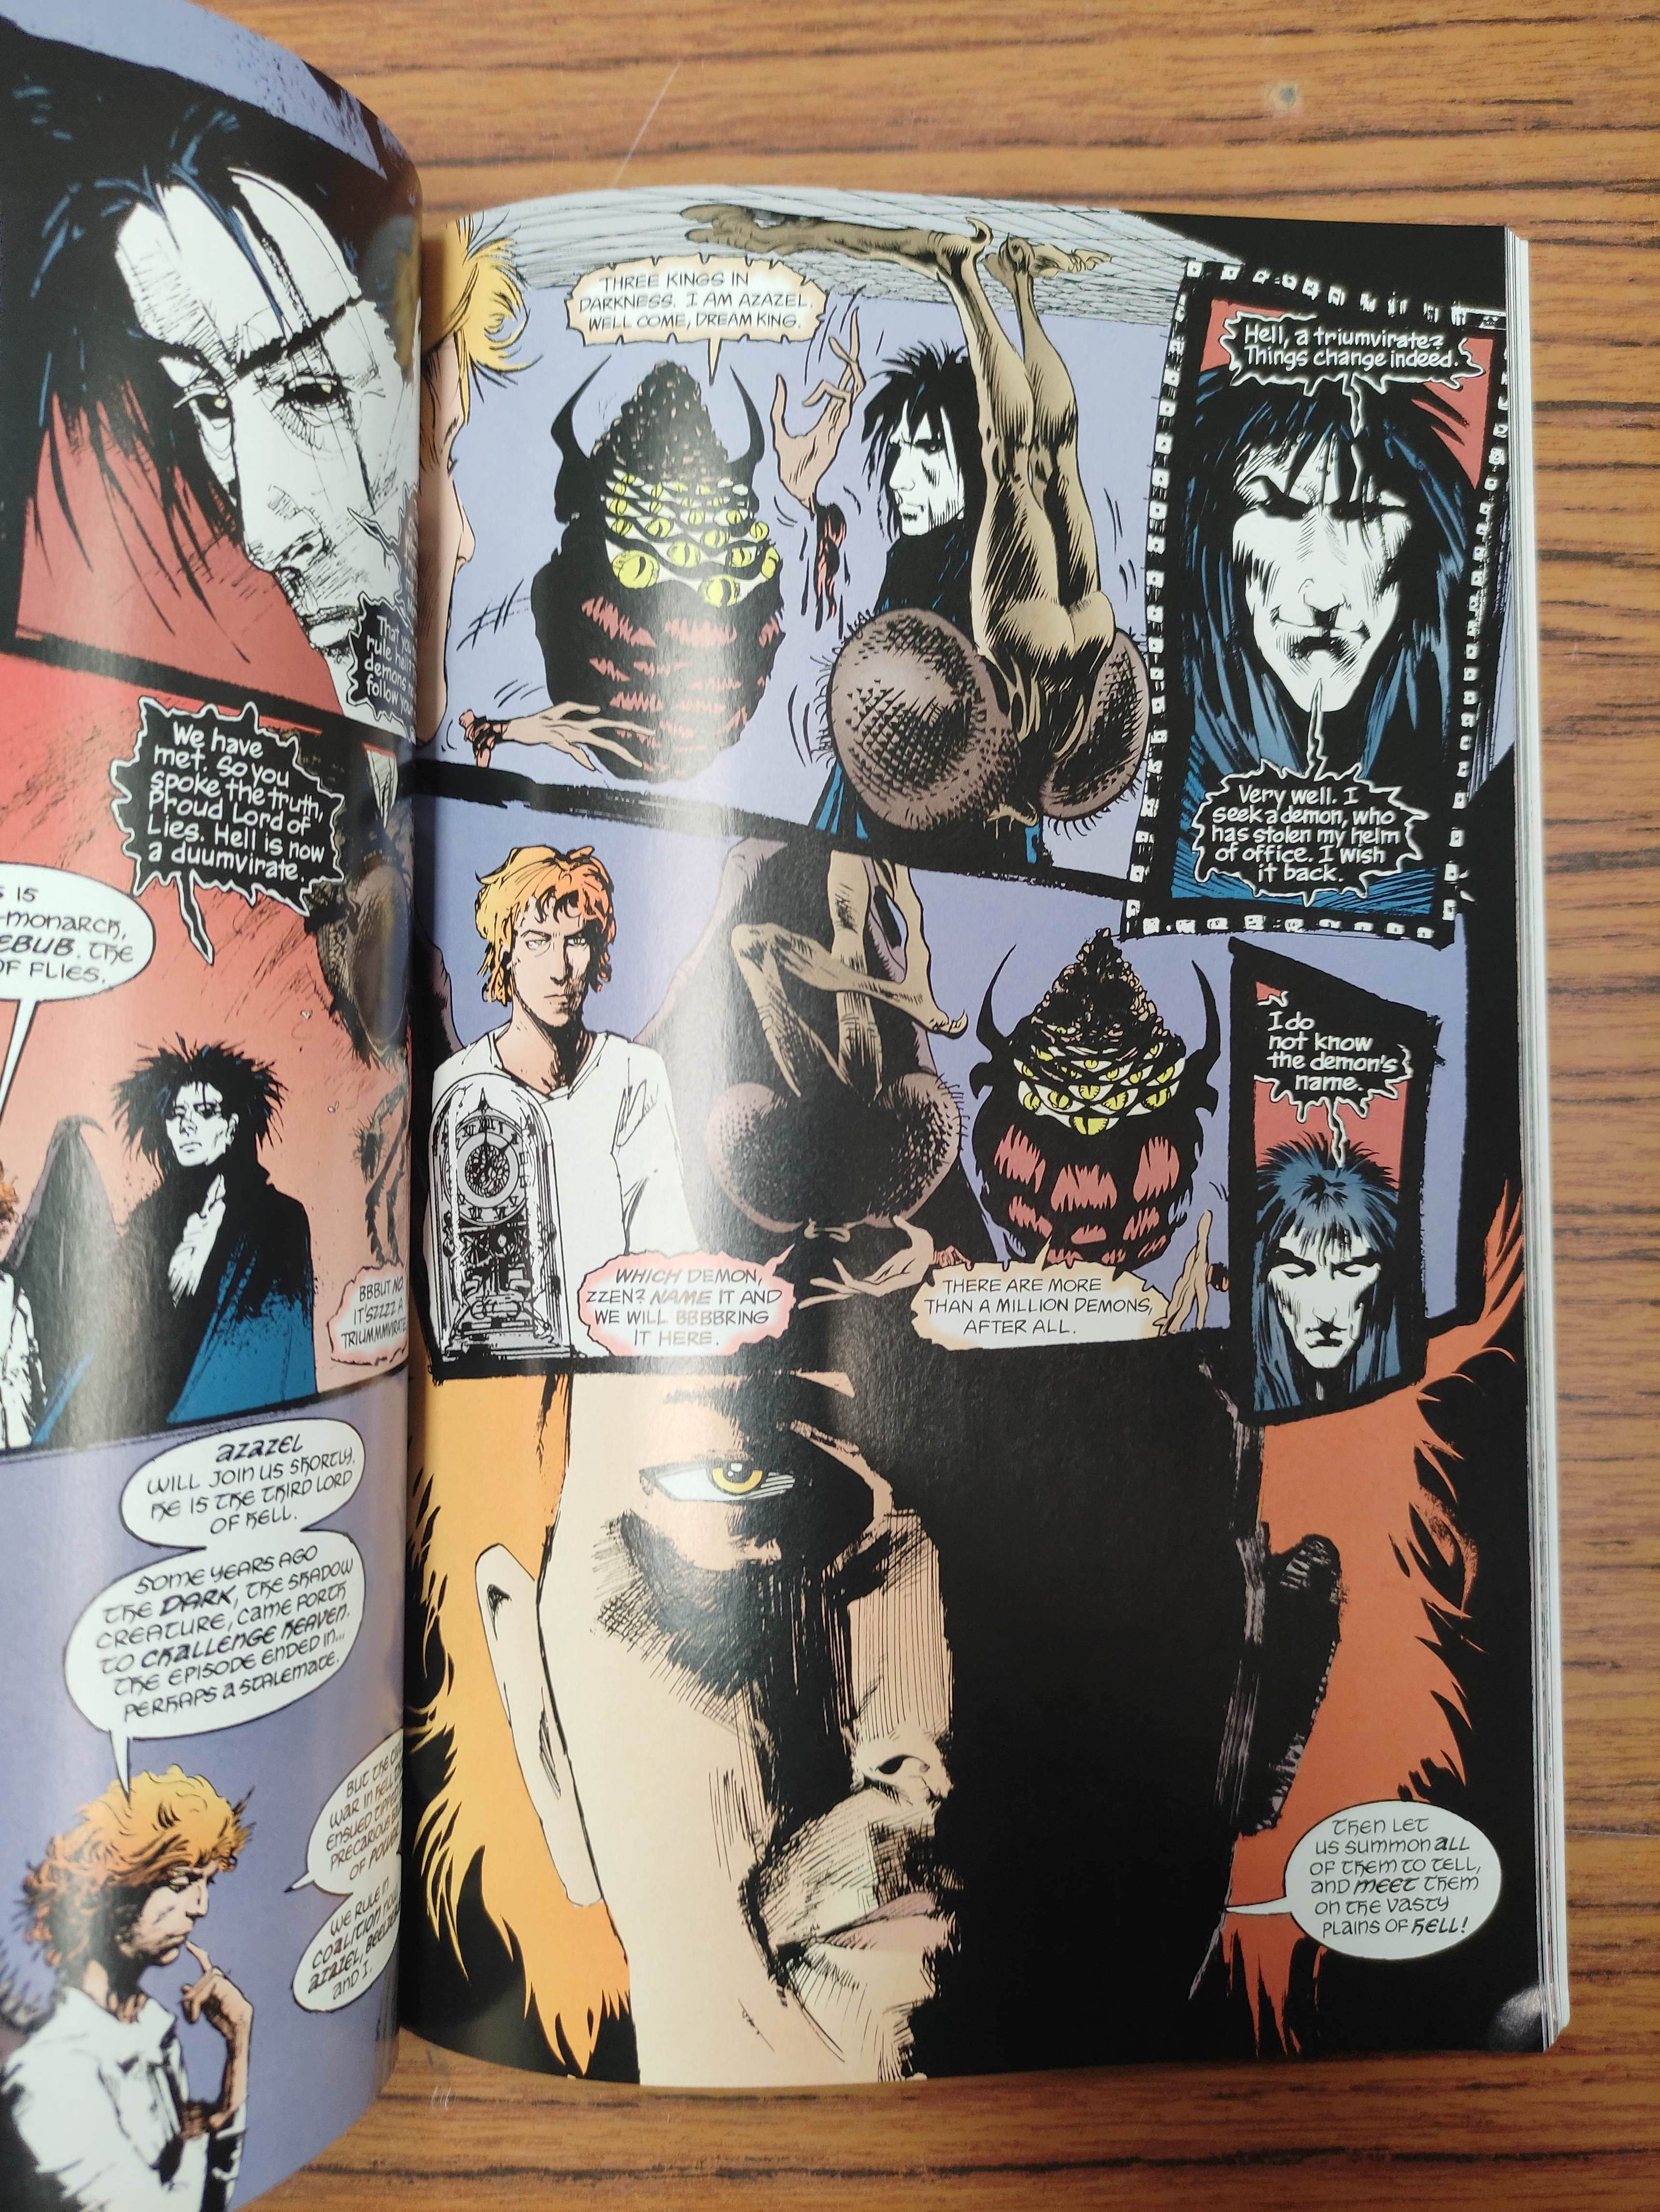 GAIMAN NEIL.The Sandman. Vols. 1 to 10 in wrappers & slip case; also 5 others, Neil Gaiman. - Image 9 of 17